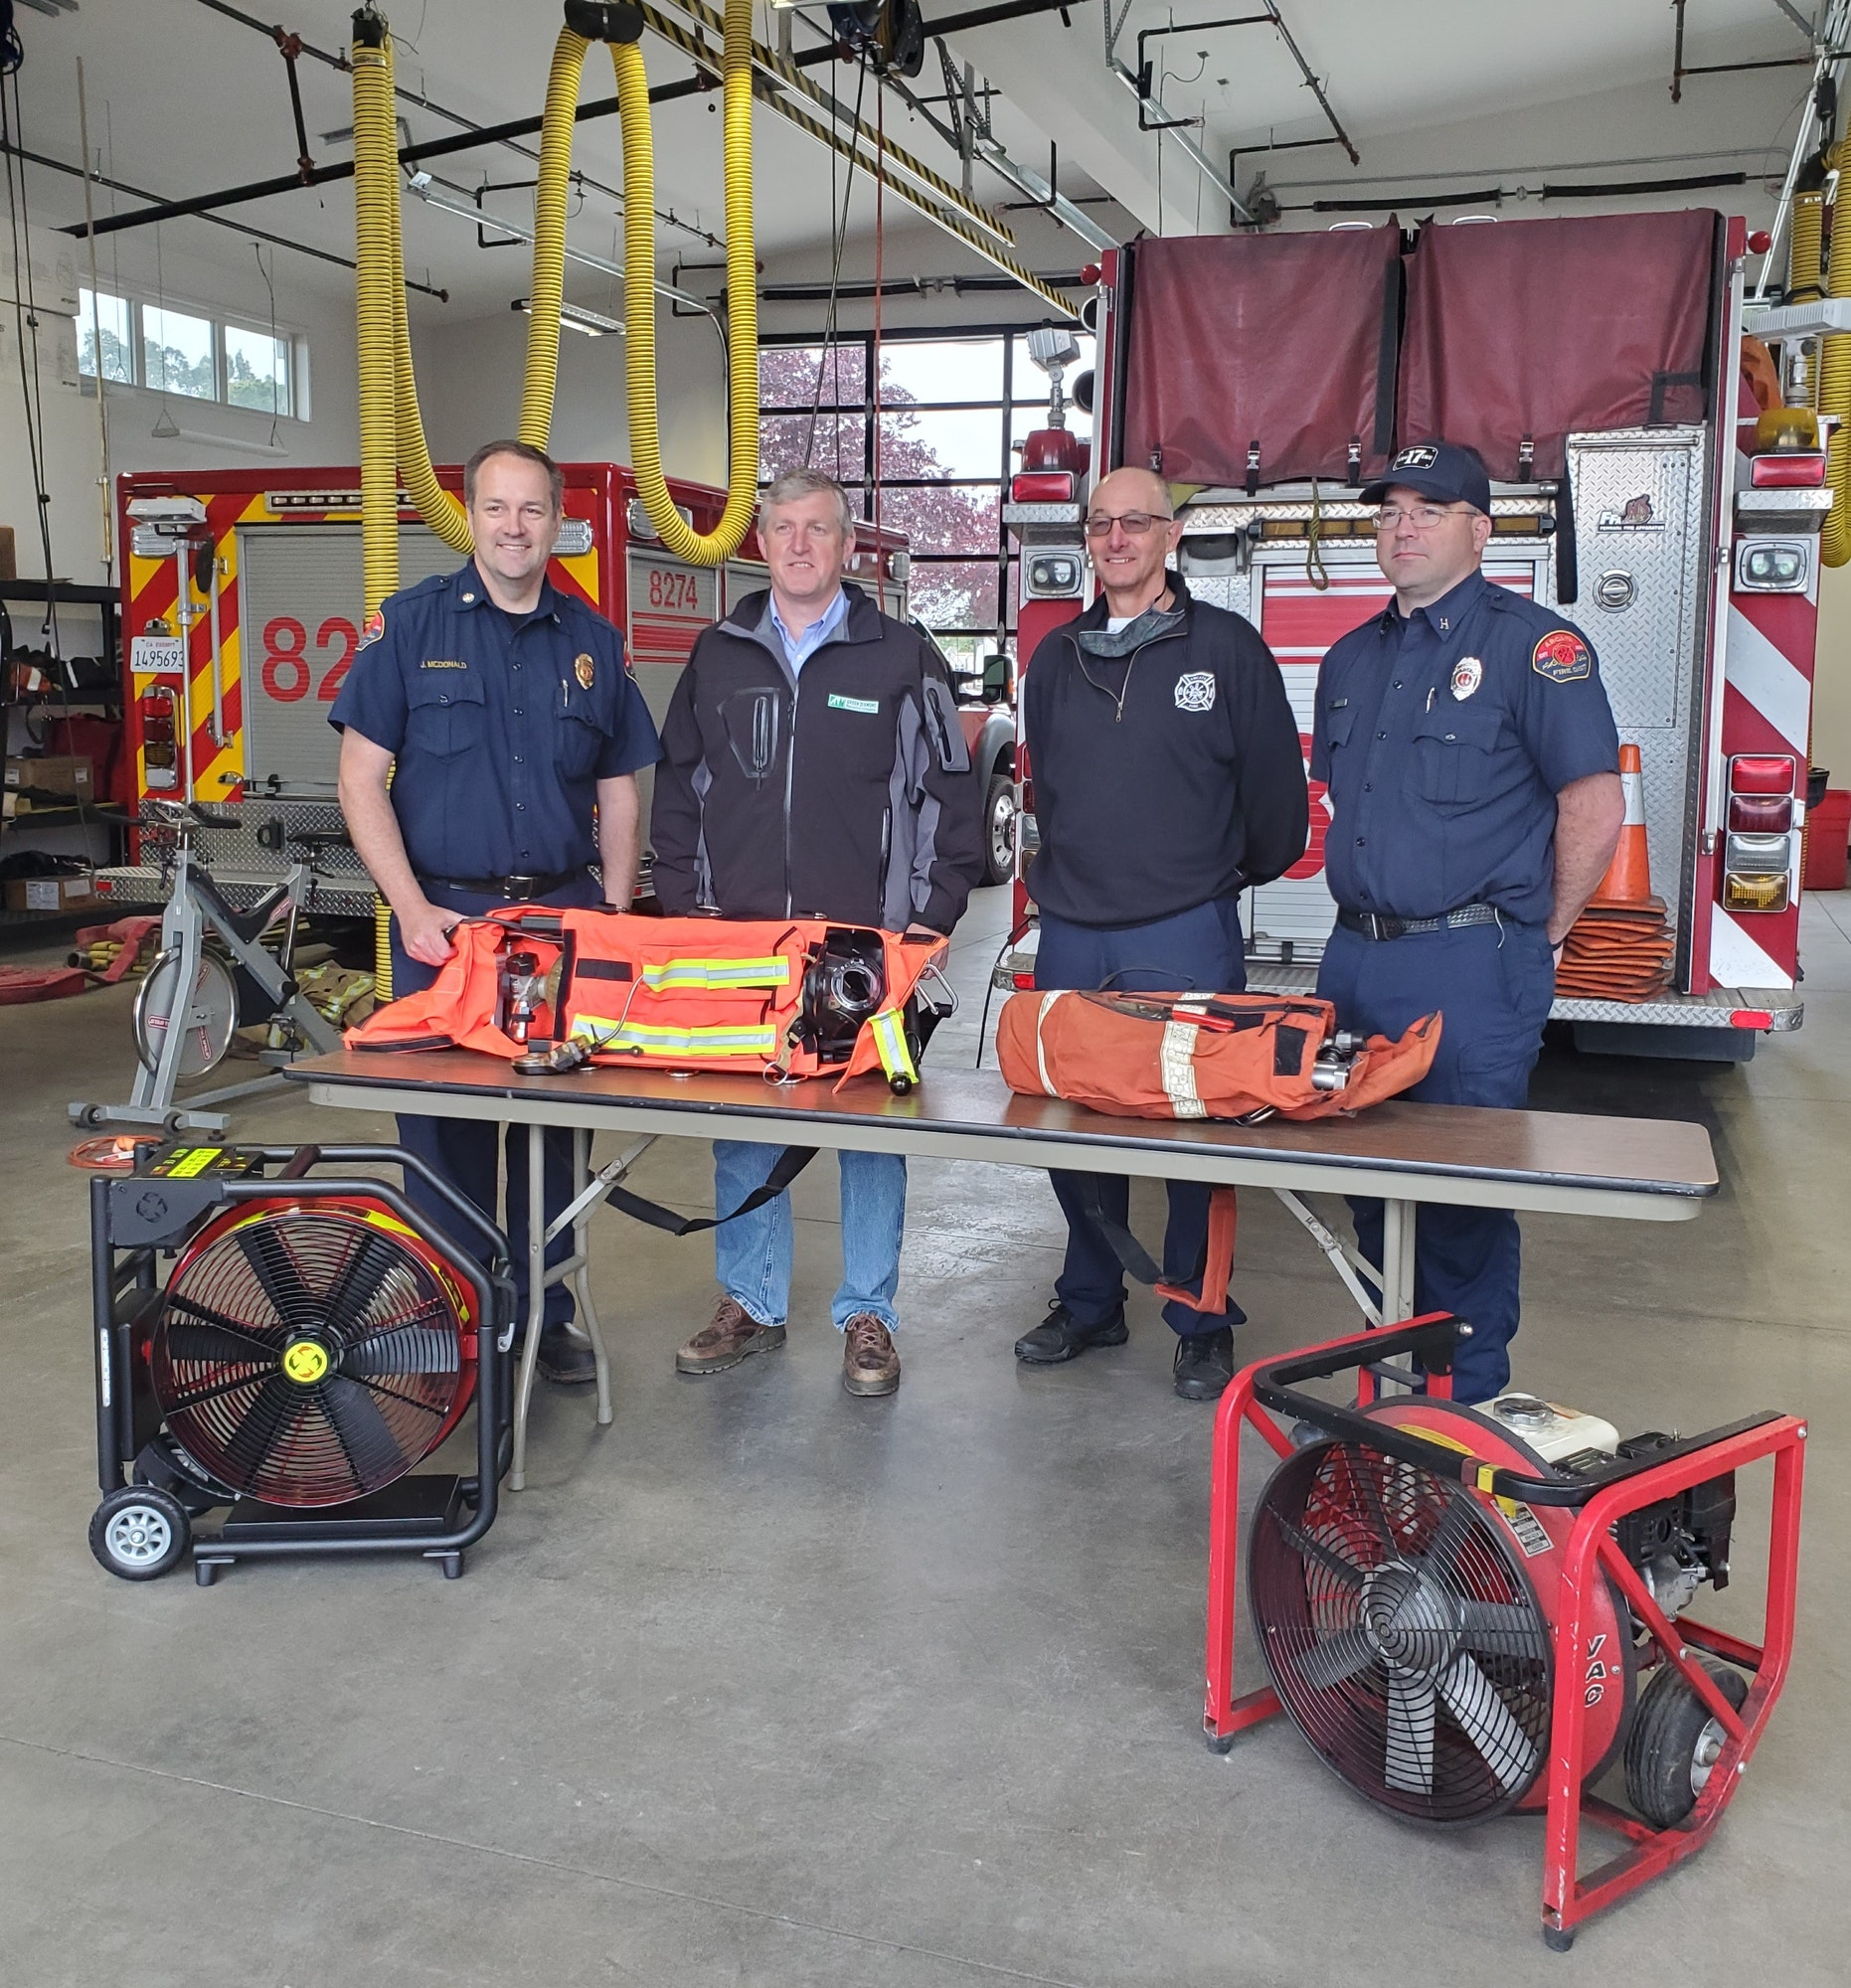 Four adult males with newly donated fire fighting equipment